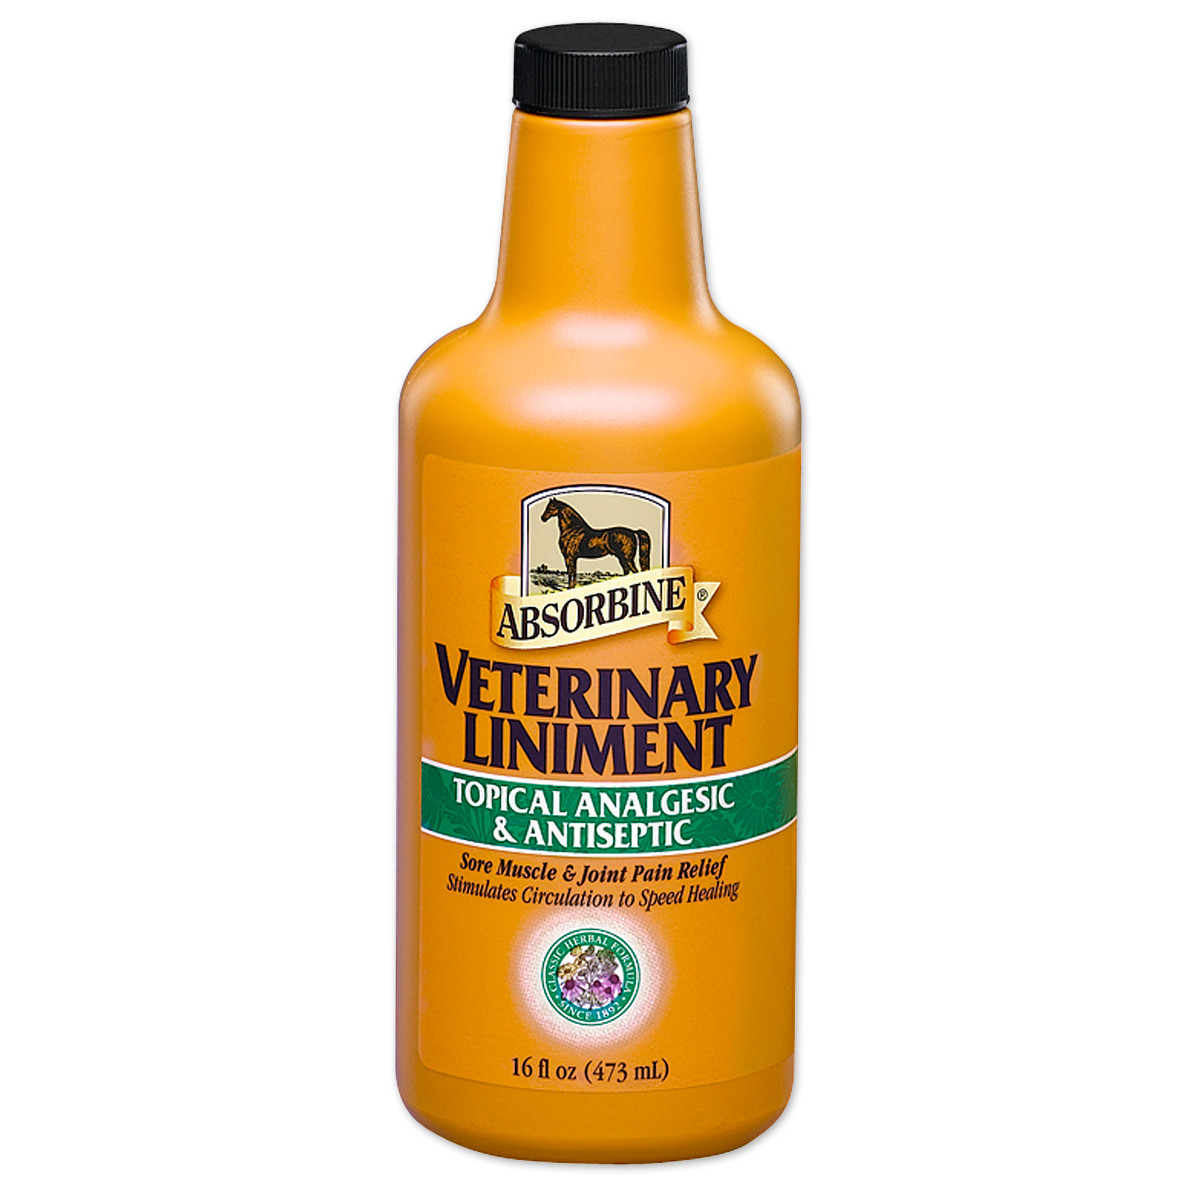 Absorbine® Veterinary Liniment